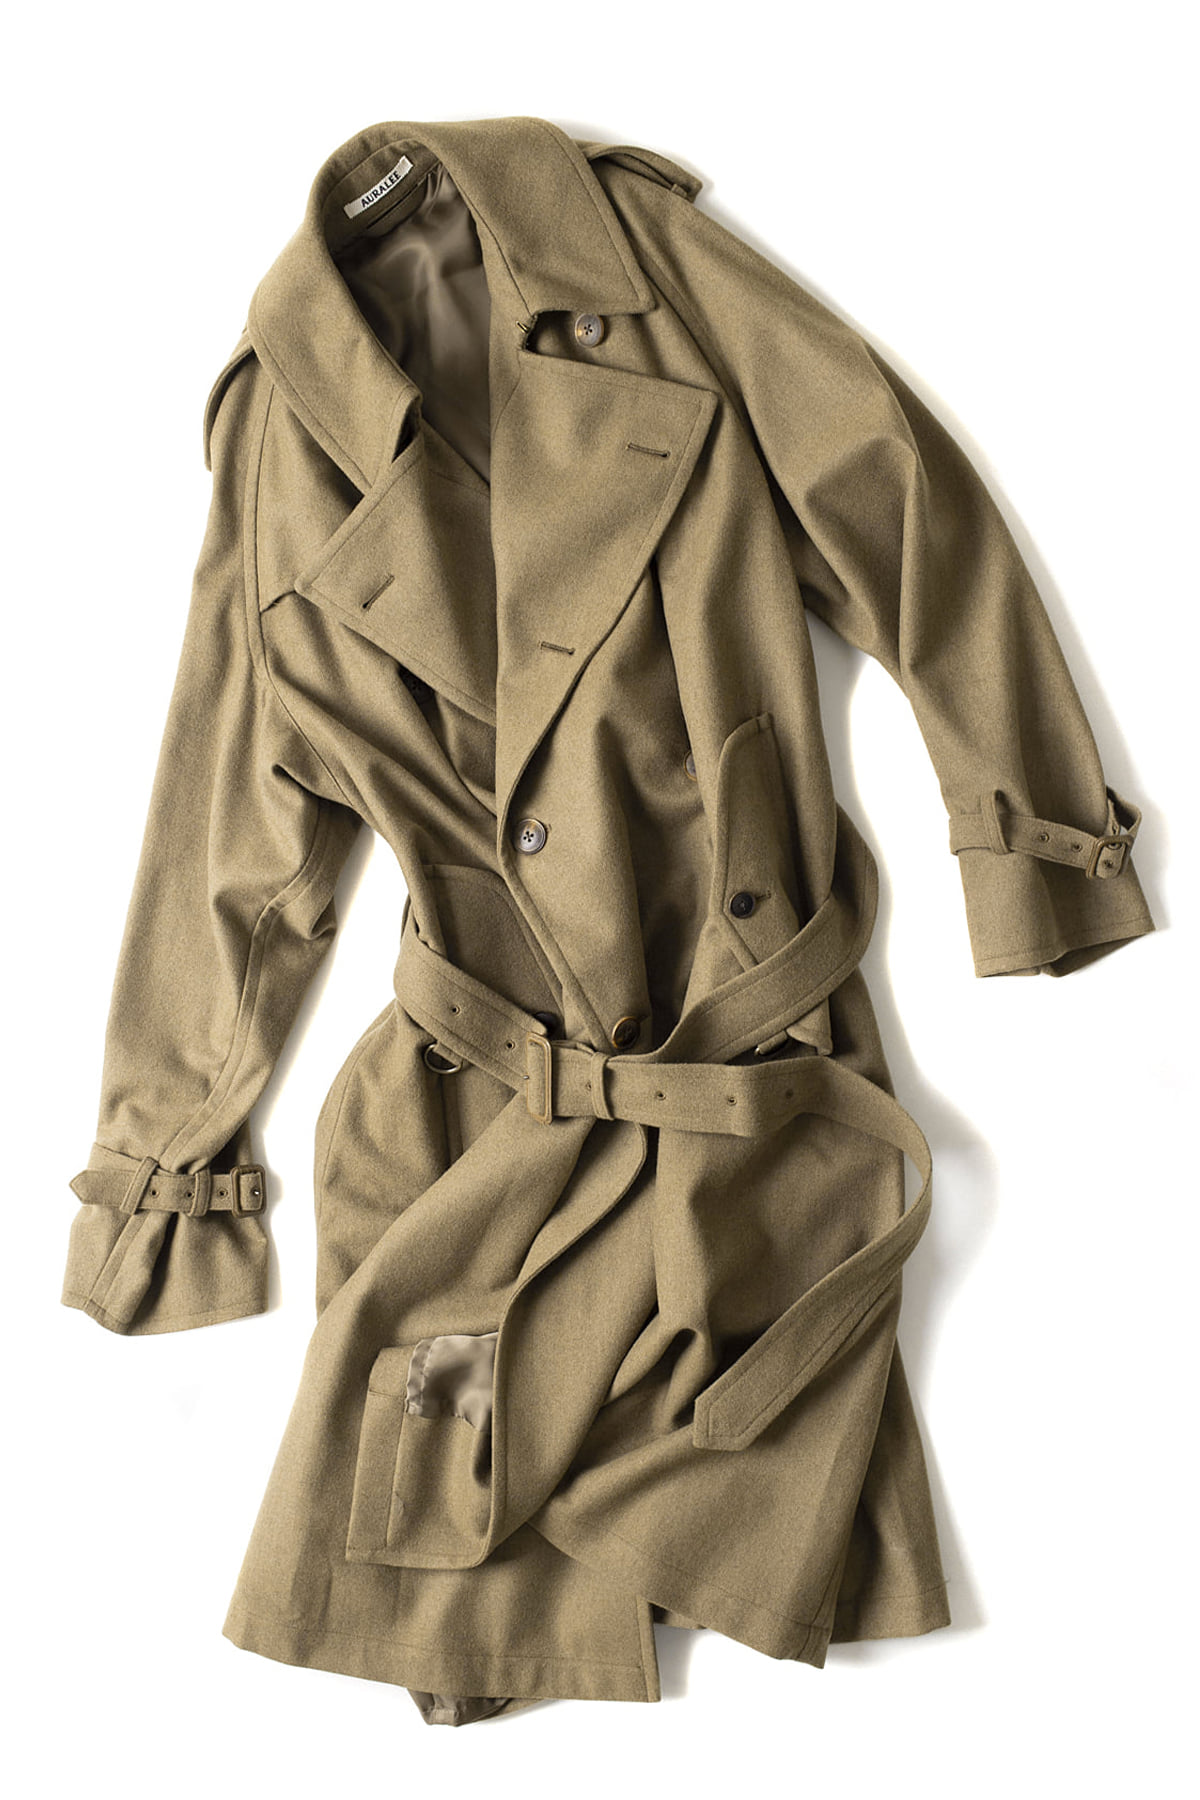 Auralee : Wool Cashmere Flannel Big Trench Coat (Mix Brown)